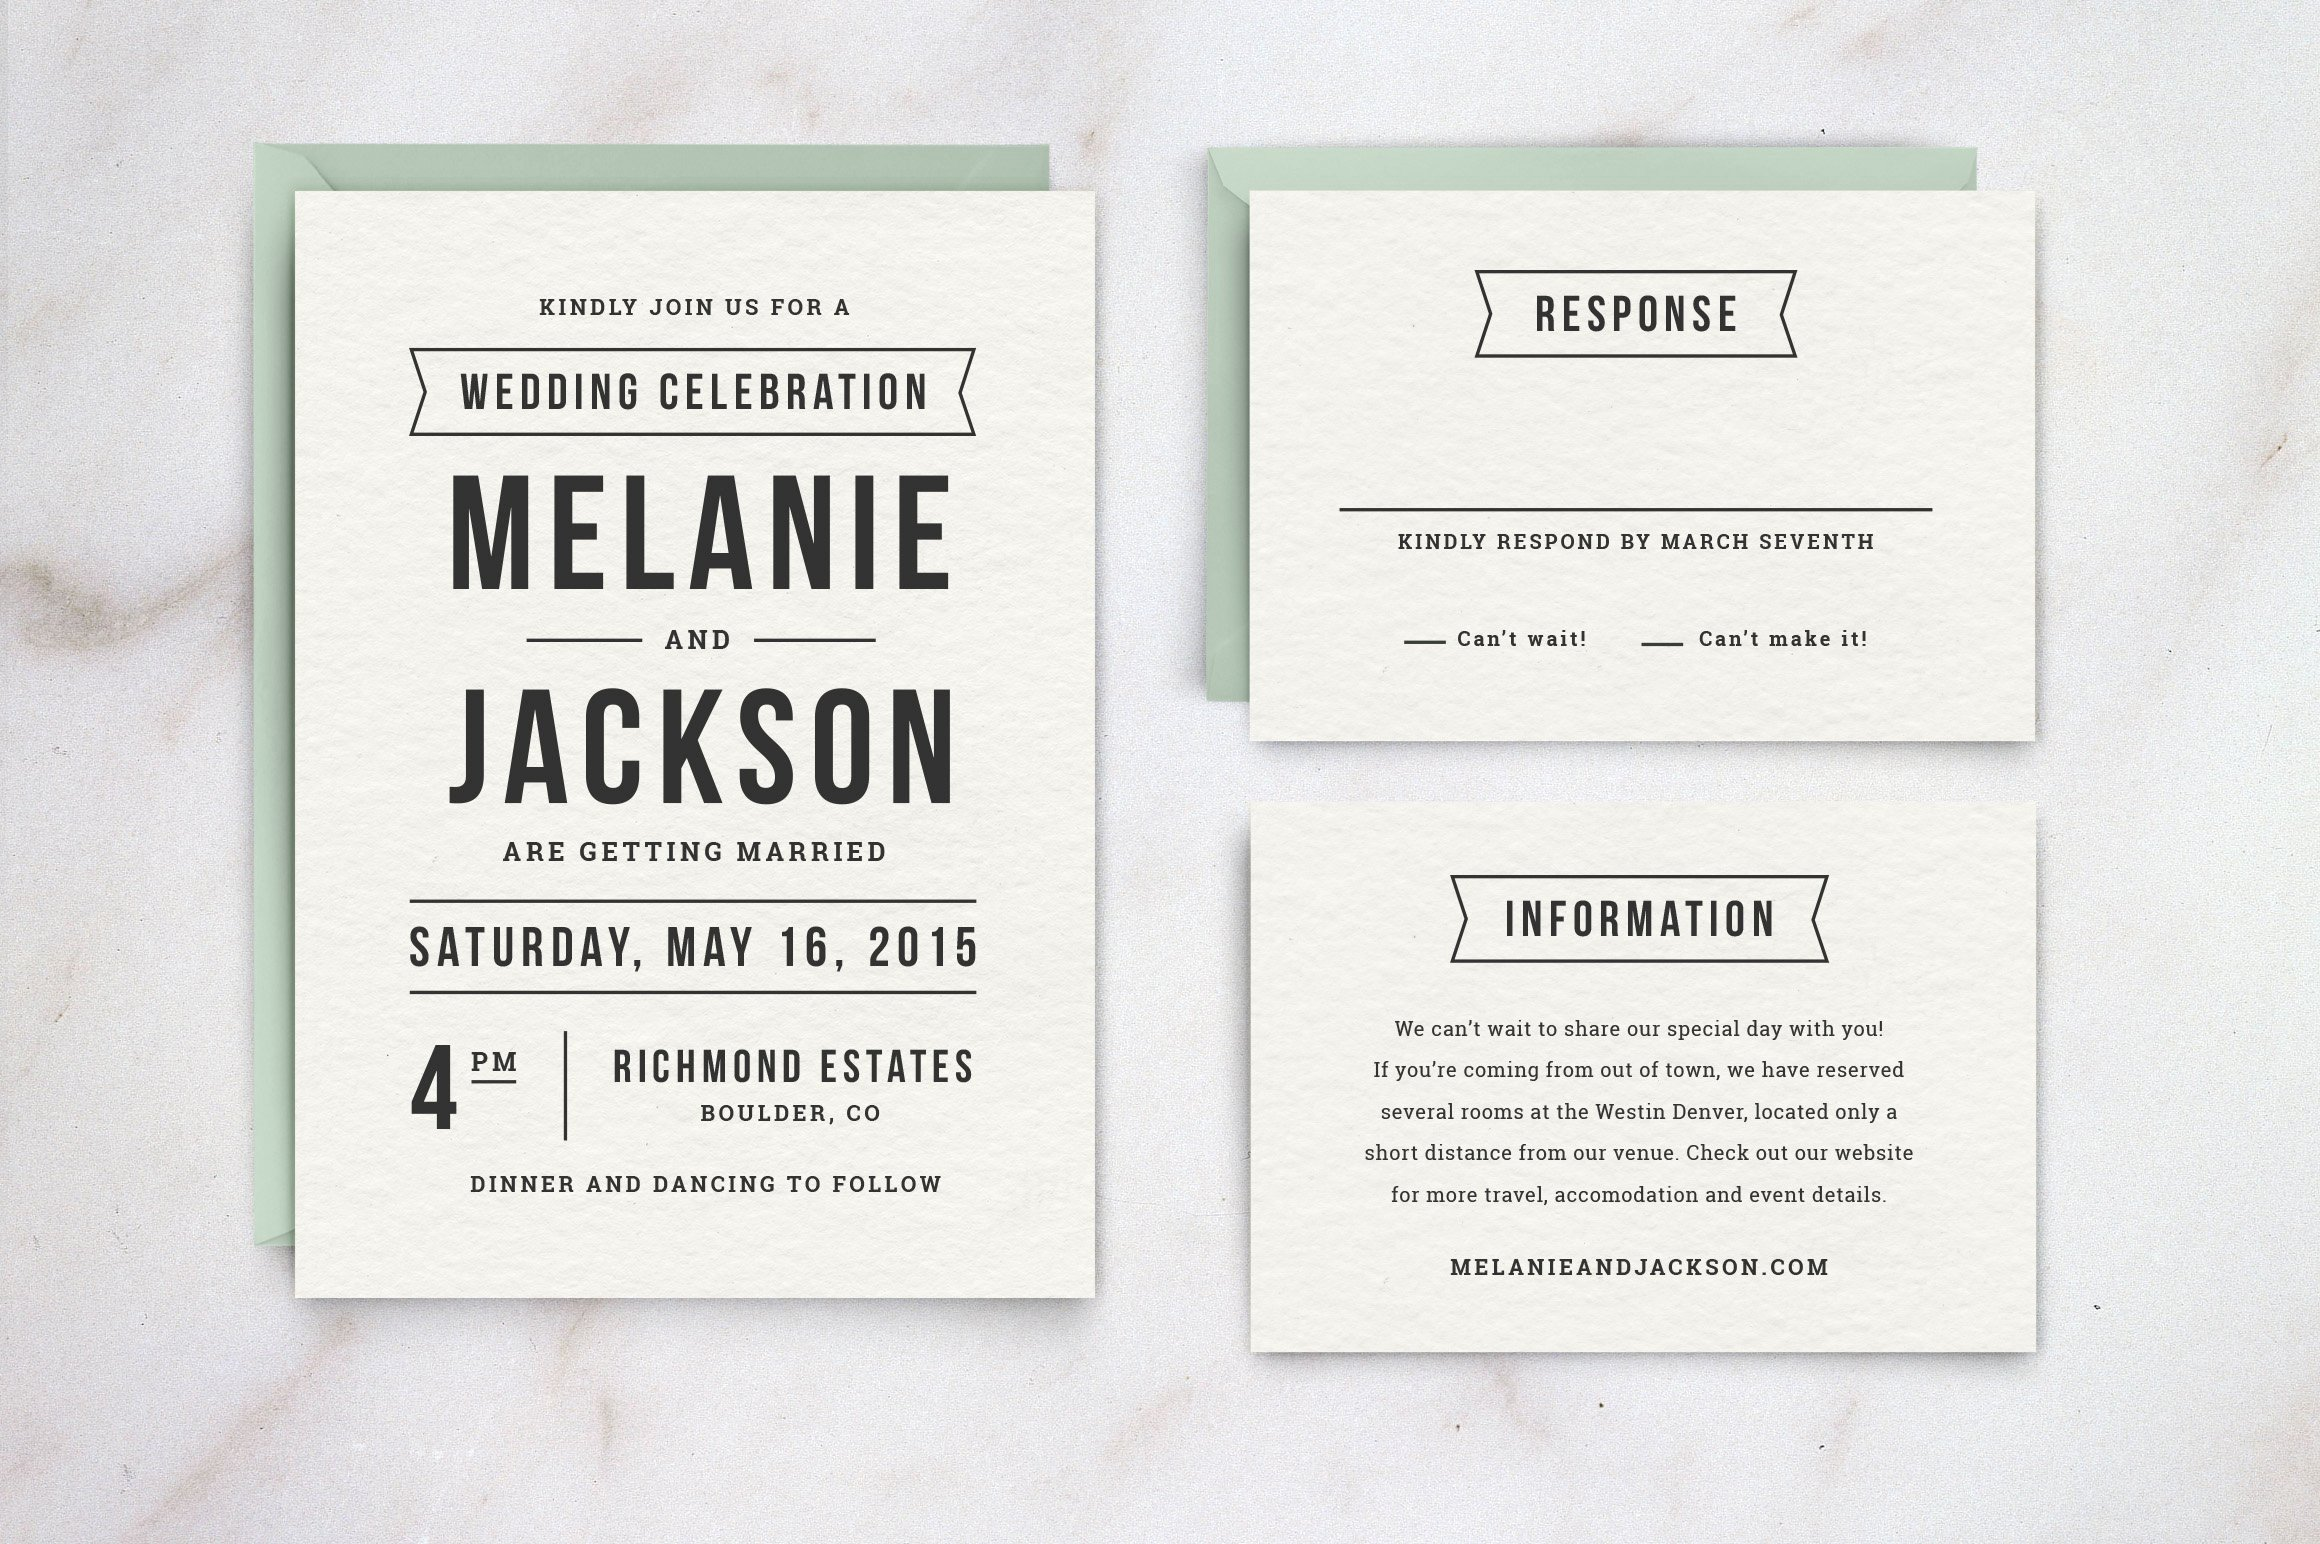 Word Template for Invitations Luxury Wedding Invitation Template Suite Wedding Templates